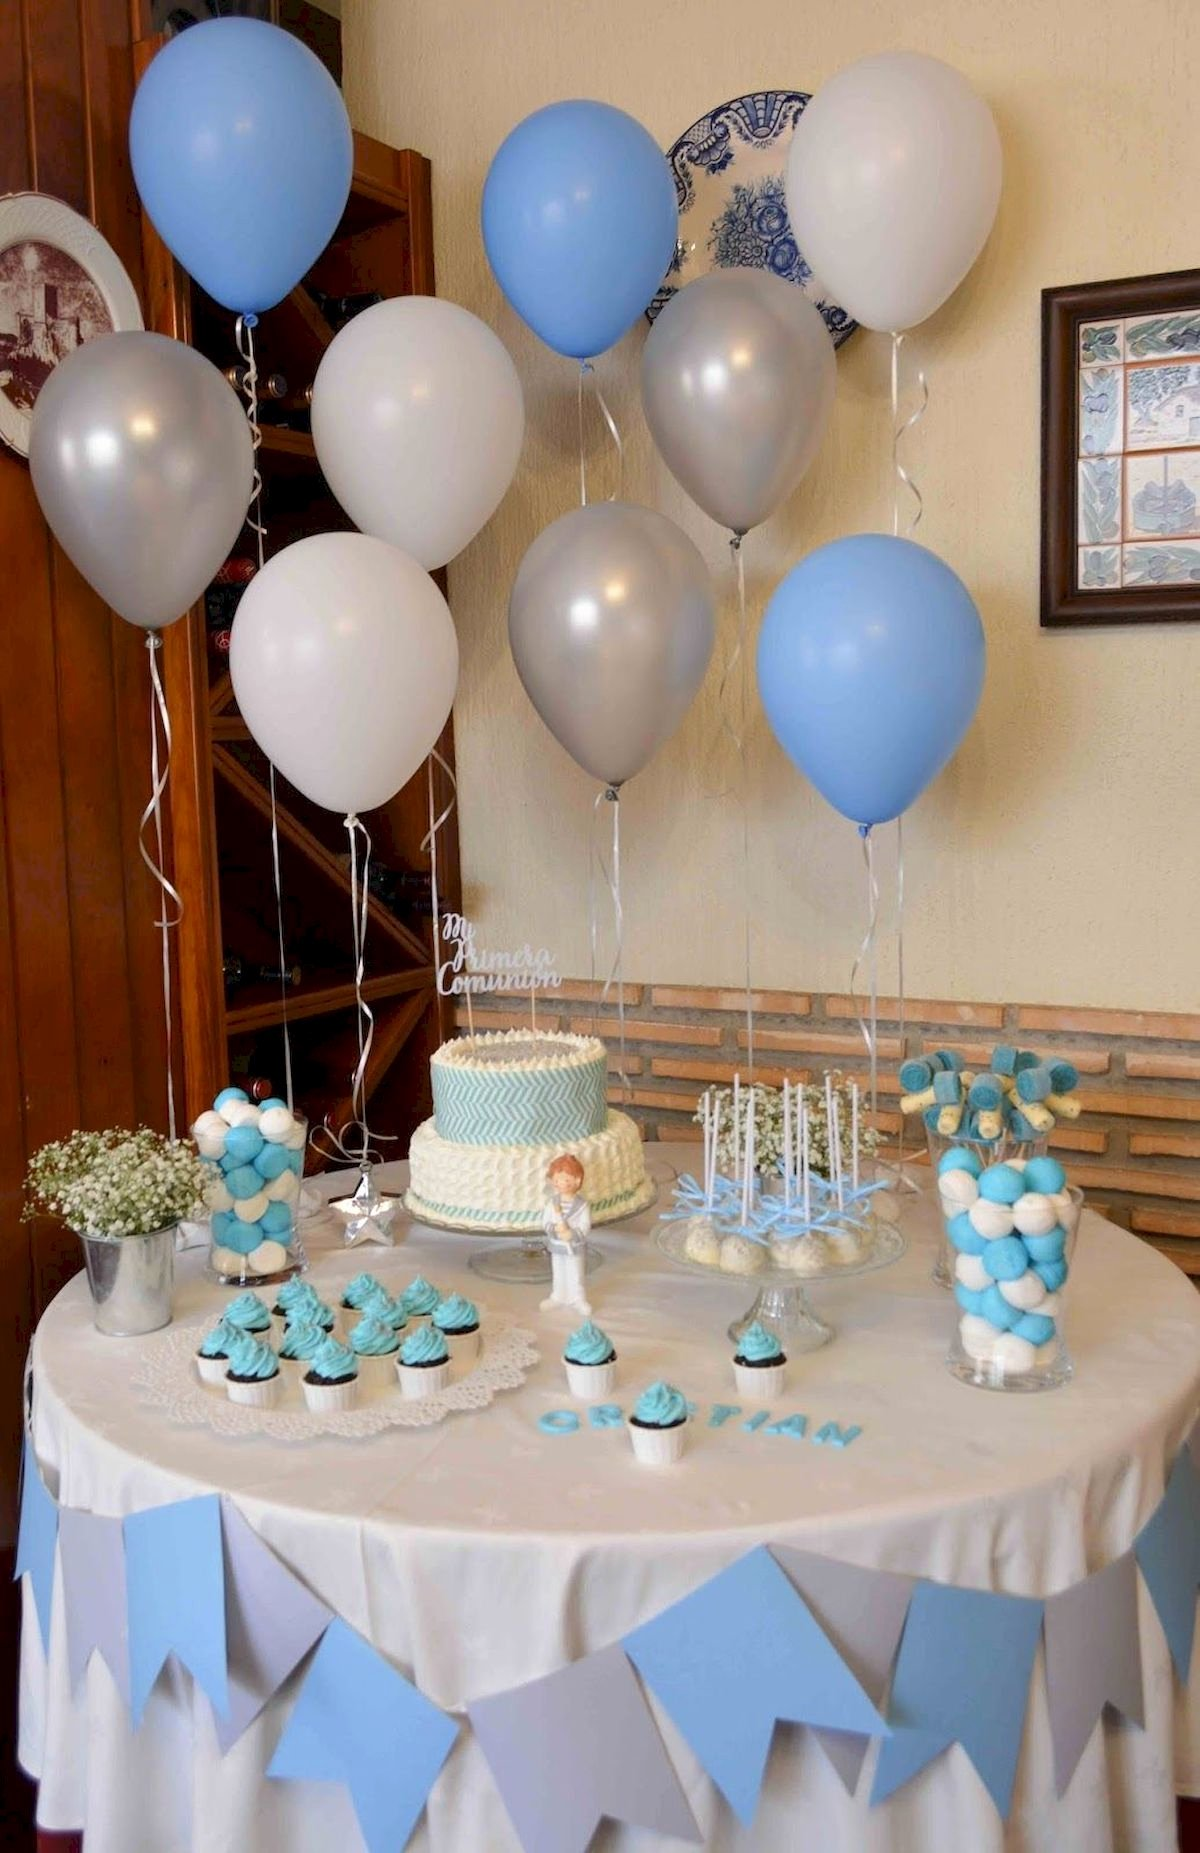 Simple Birthday Decoration Ideas at Home for Boy Luxury Decoration Birthday Party Ideas